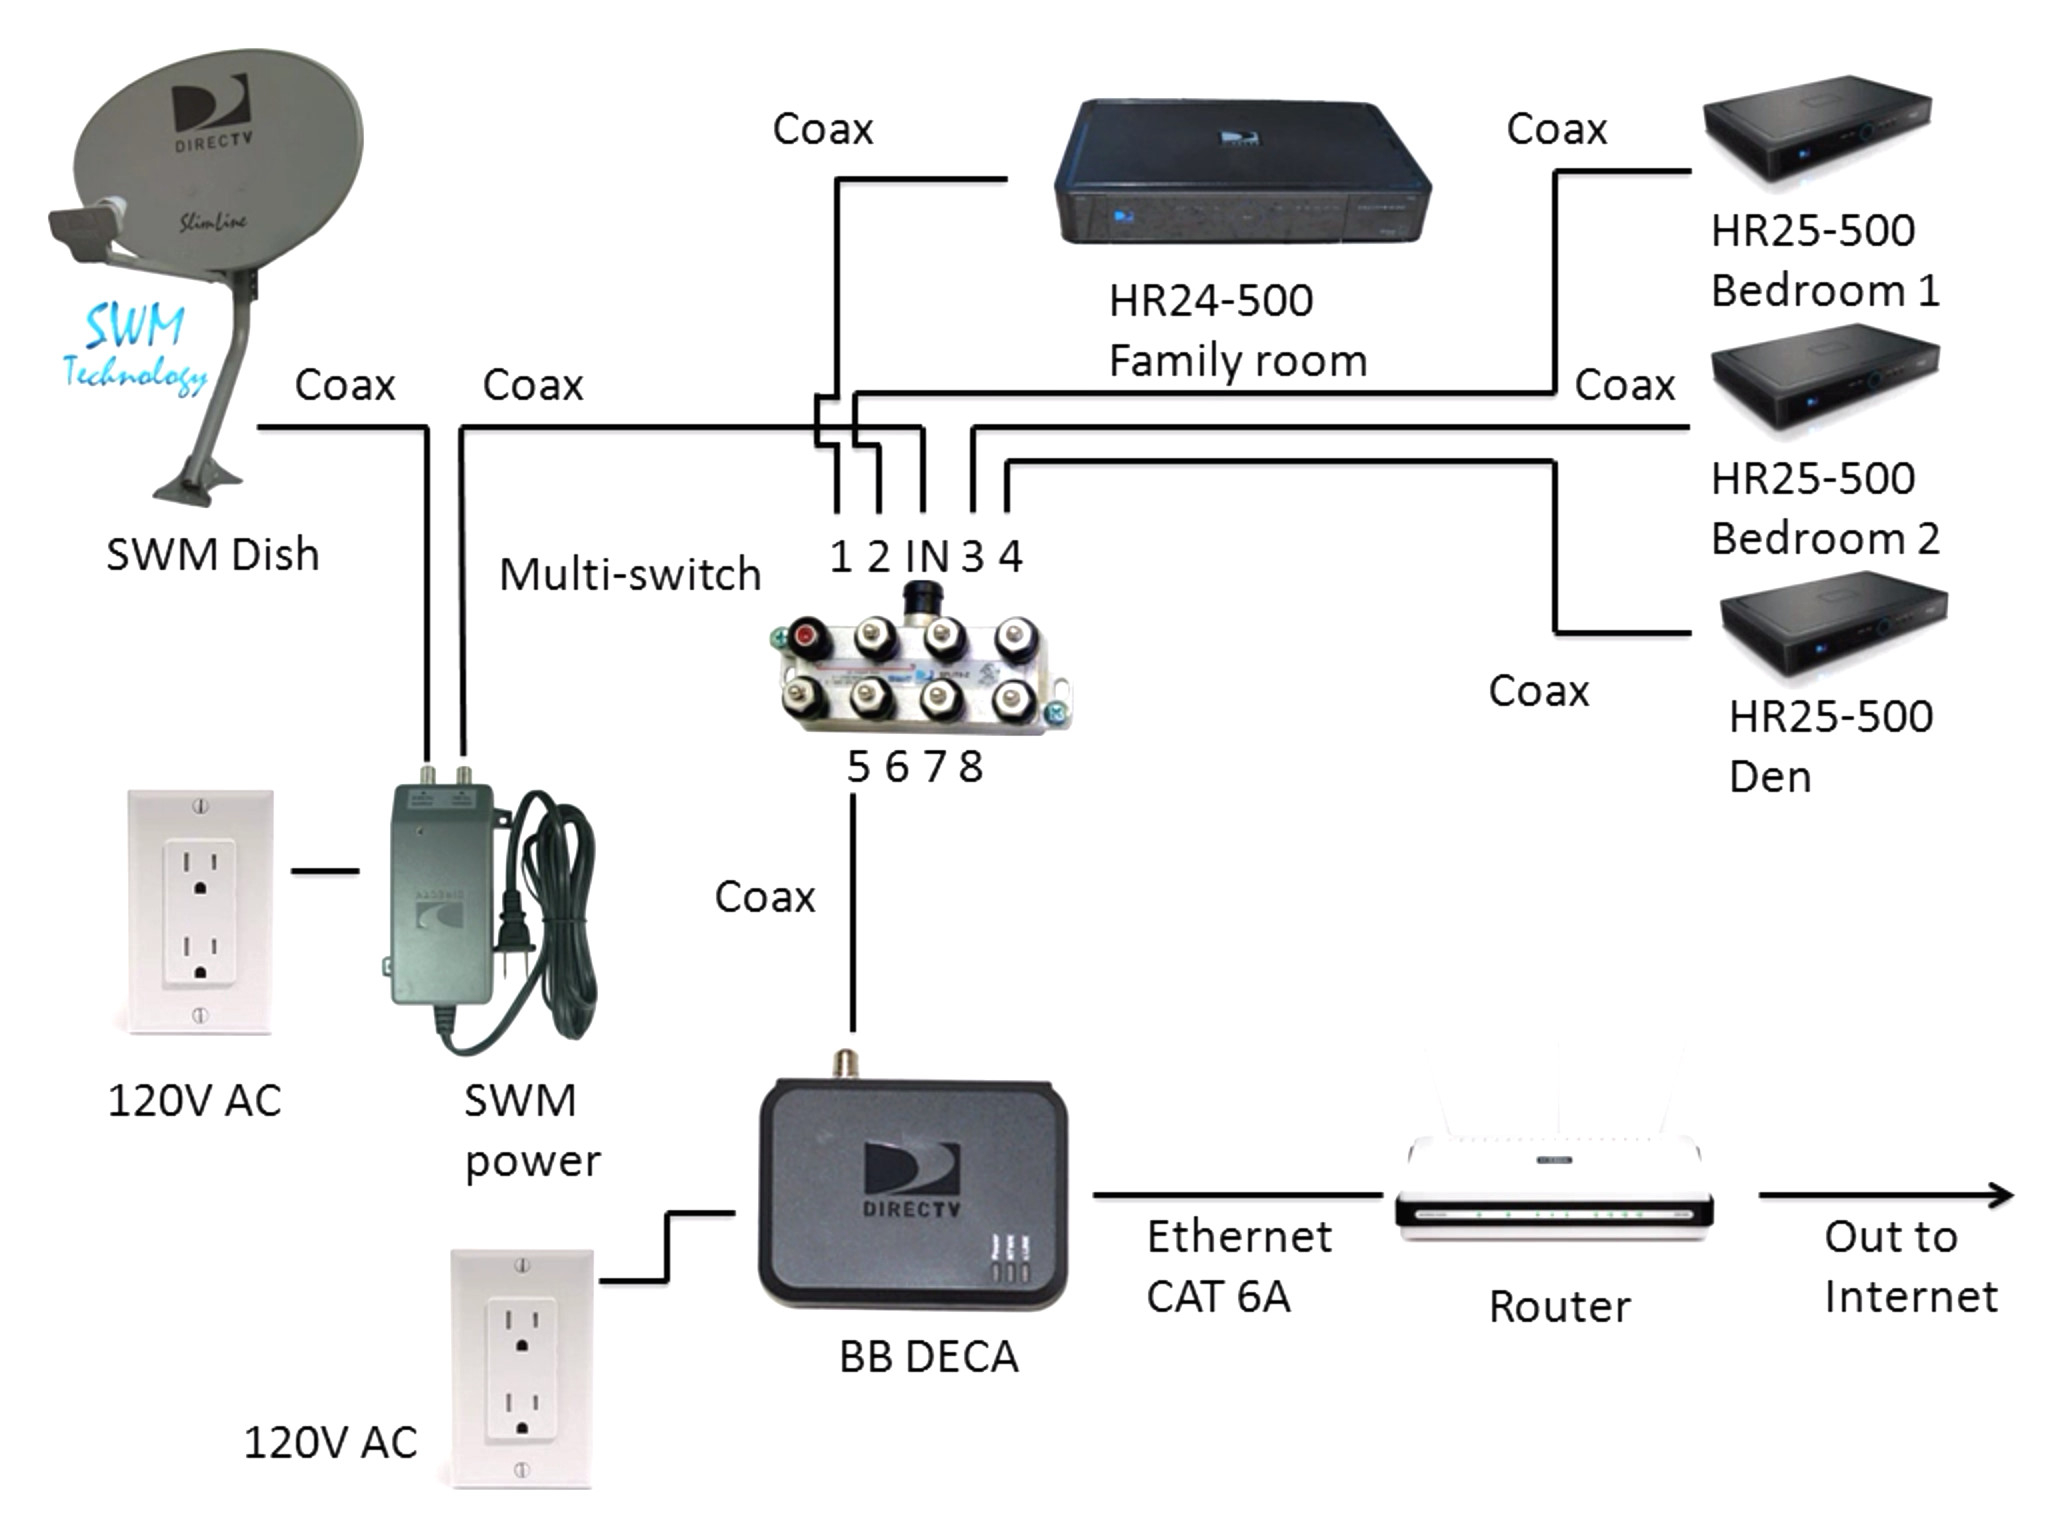 wiring diagram for dish network satellite Collection-Directv Swm Wiring Diagrams And Resources Simple Dish Network Beautiful Diagram For Direct Tv With Satellite Genie 4 5-h